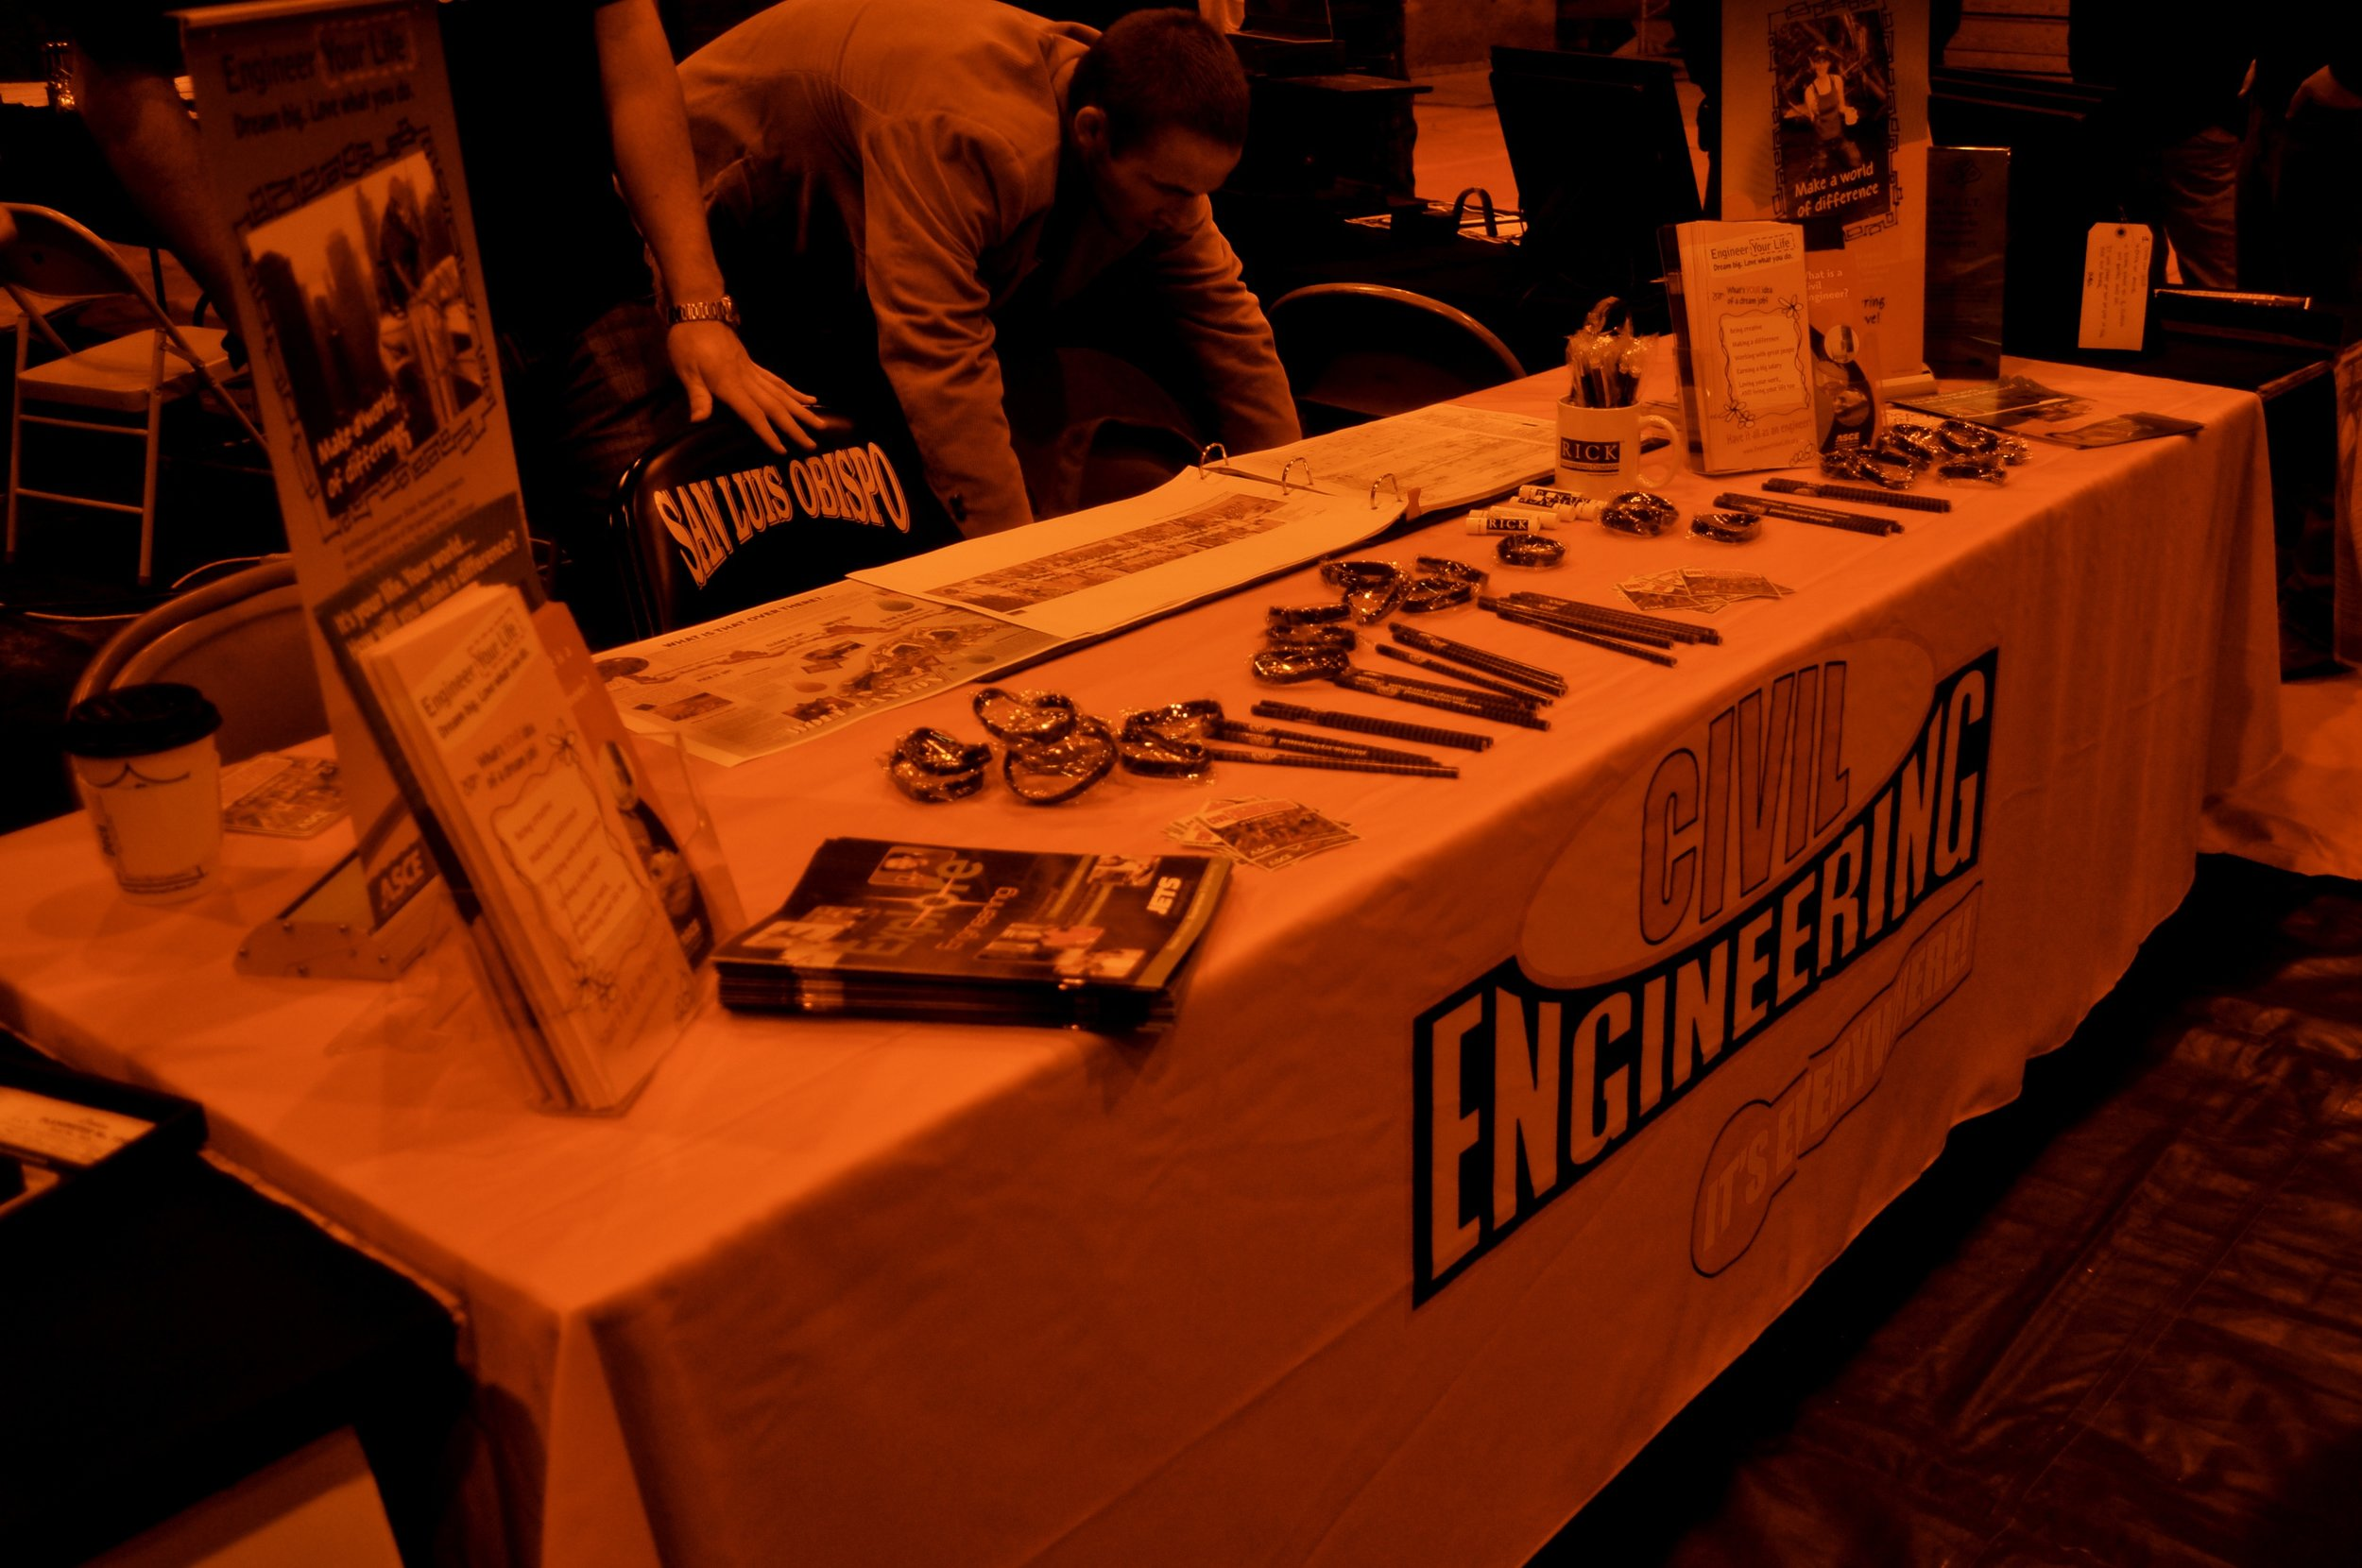 slocareerfair-dec2009booth.jpg